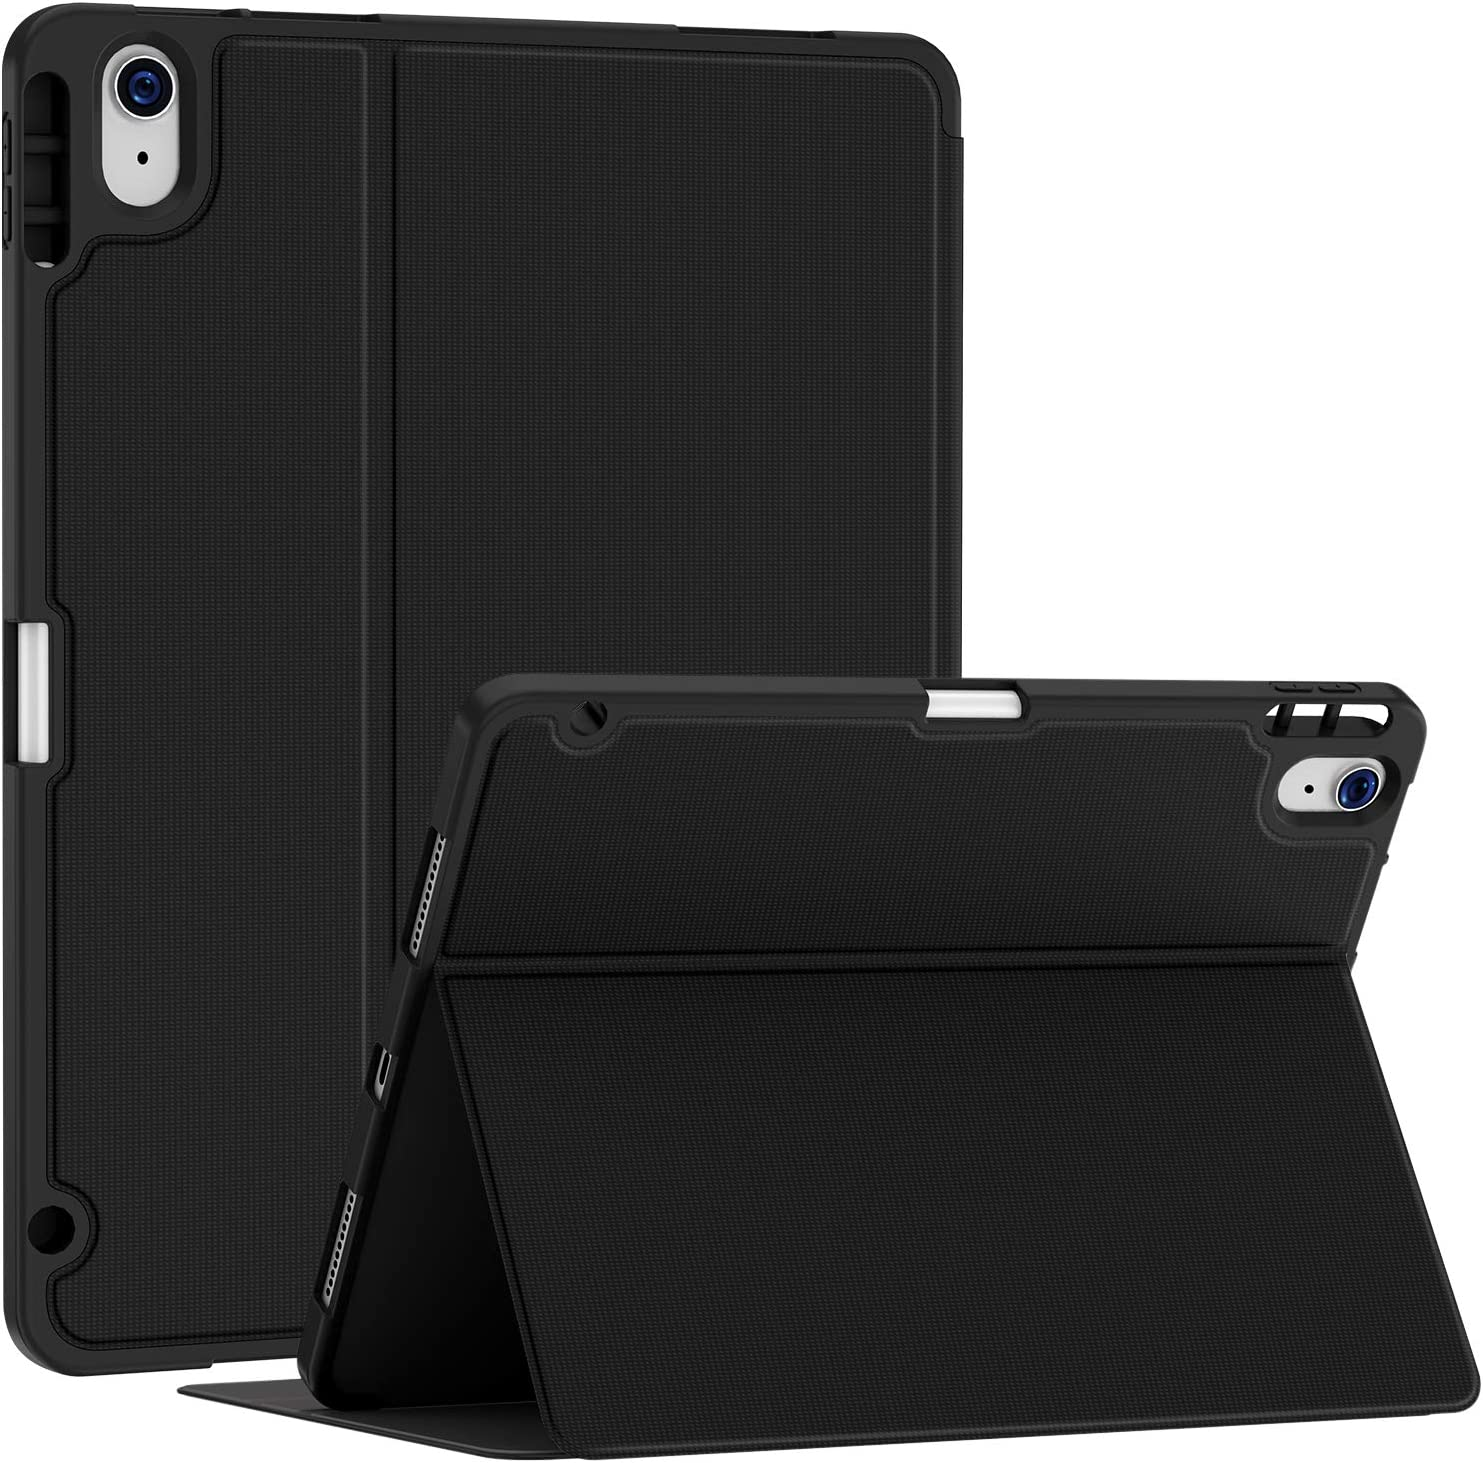 Soke Case for iPad Air 4th Generation 2020, iPad 10.9'' Case with Pencil Holder, Premium Shockproof Stand Folio Case, Multi- Viewing Angles, No Auto Wake/Sleep Function, Black